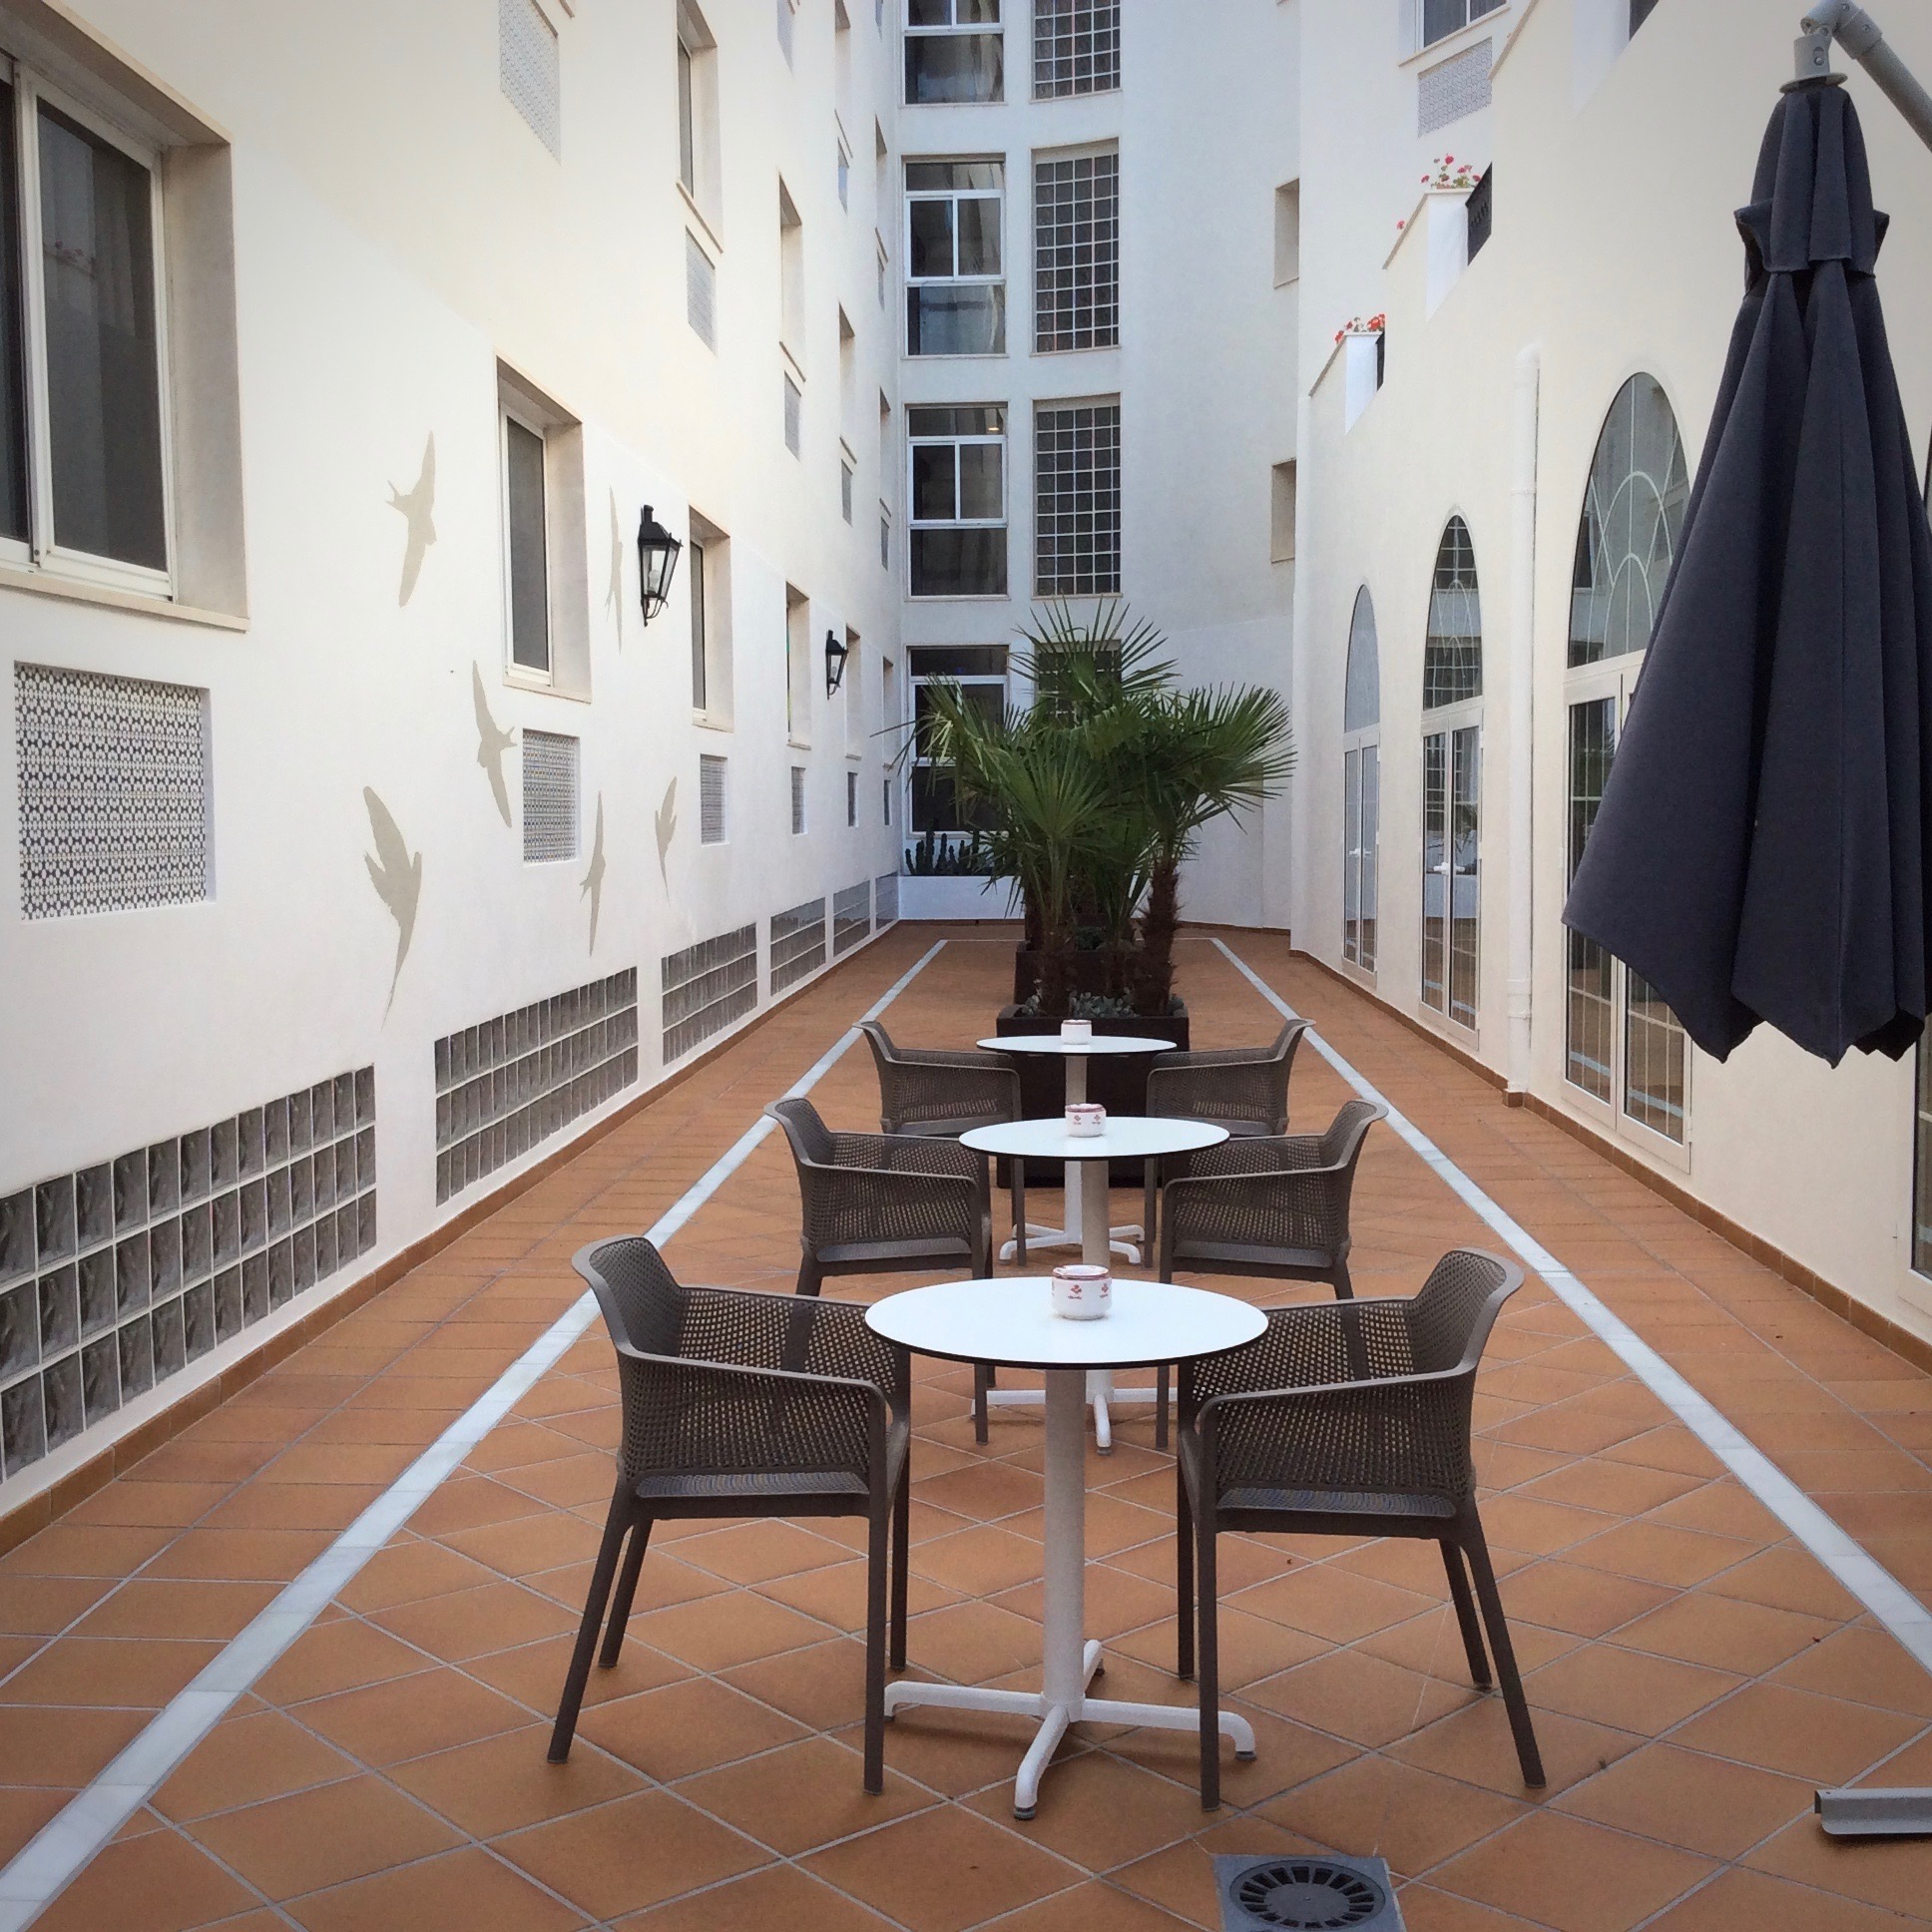 patio-hotel-monte-triana-vista-trasera